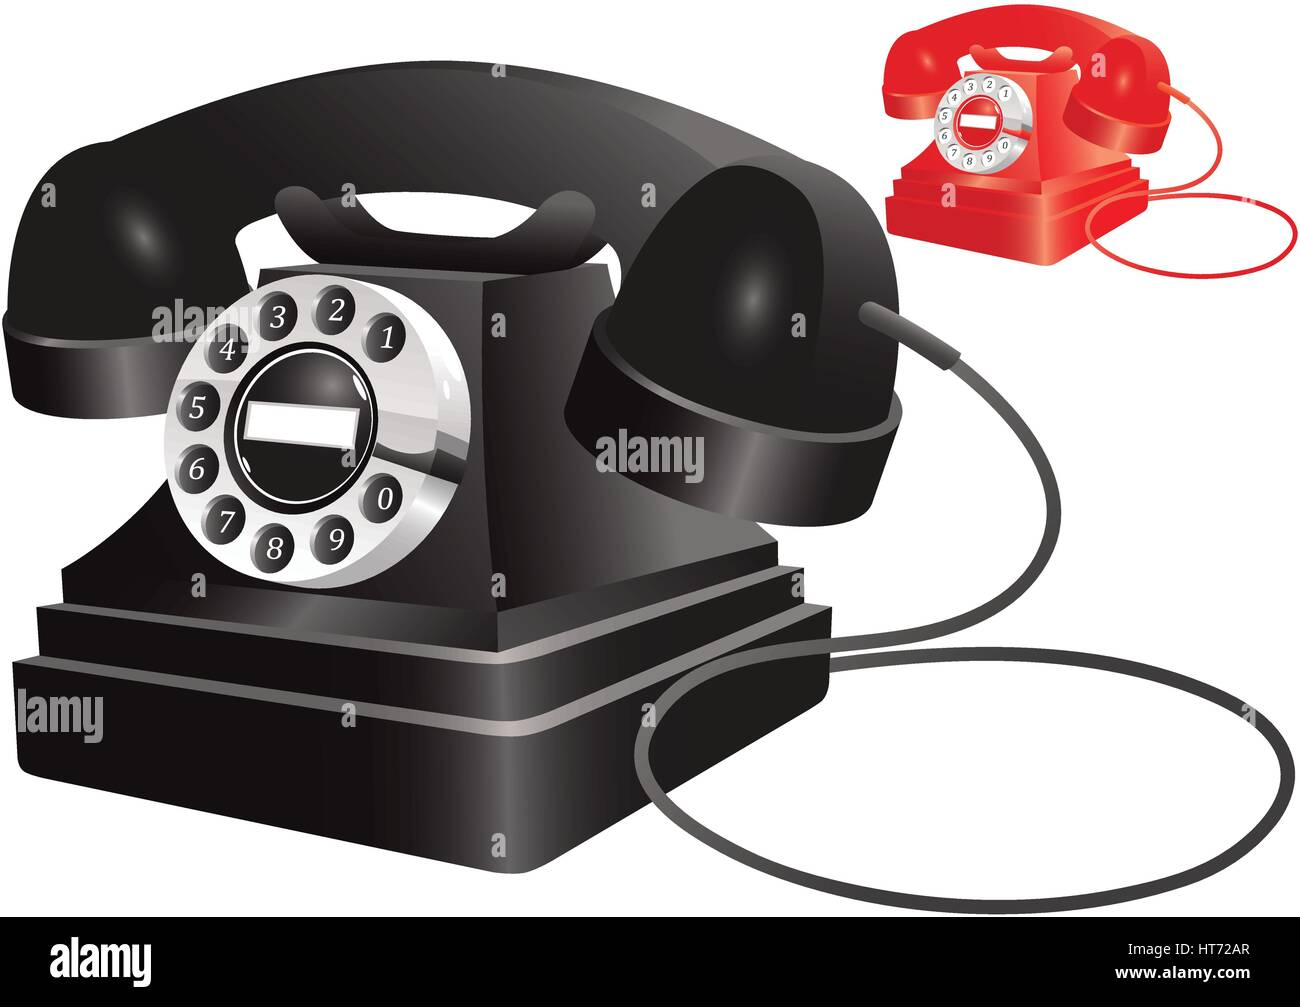 Two illustrations of an old fashioned telephone. One black, and one red. - Stock Image